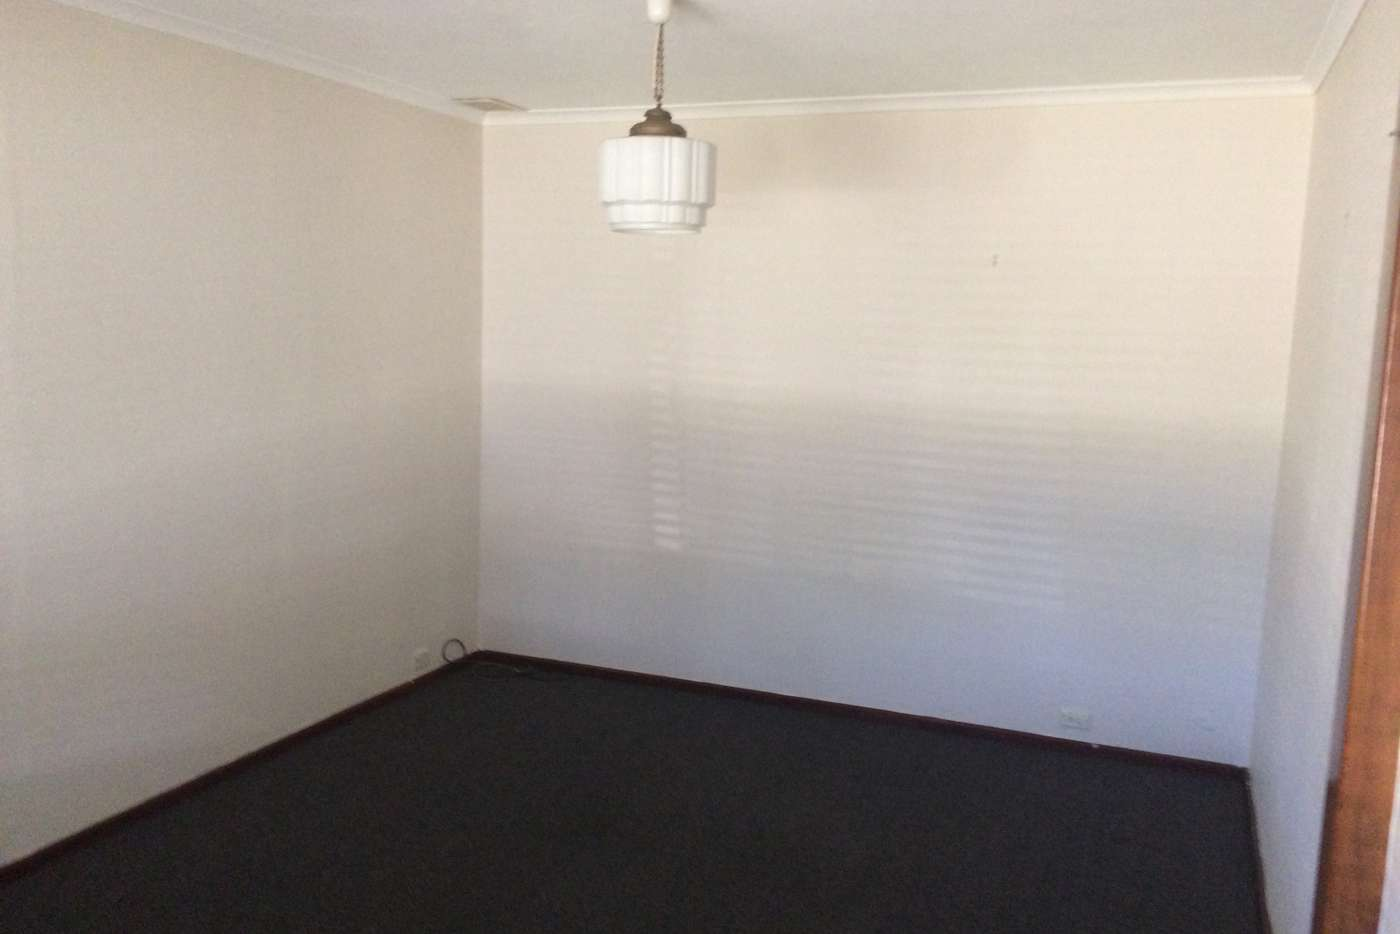 Sixth view of Homely house listing, 16 William Street, Rockingham WA 6168